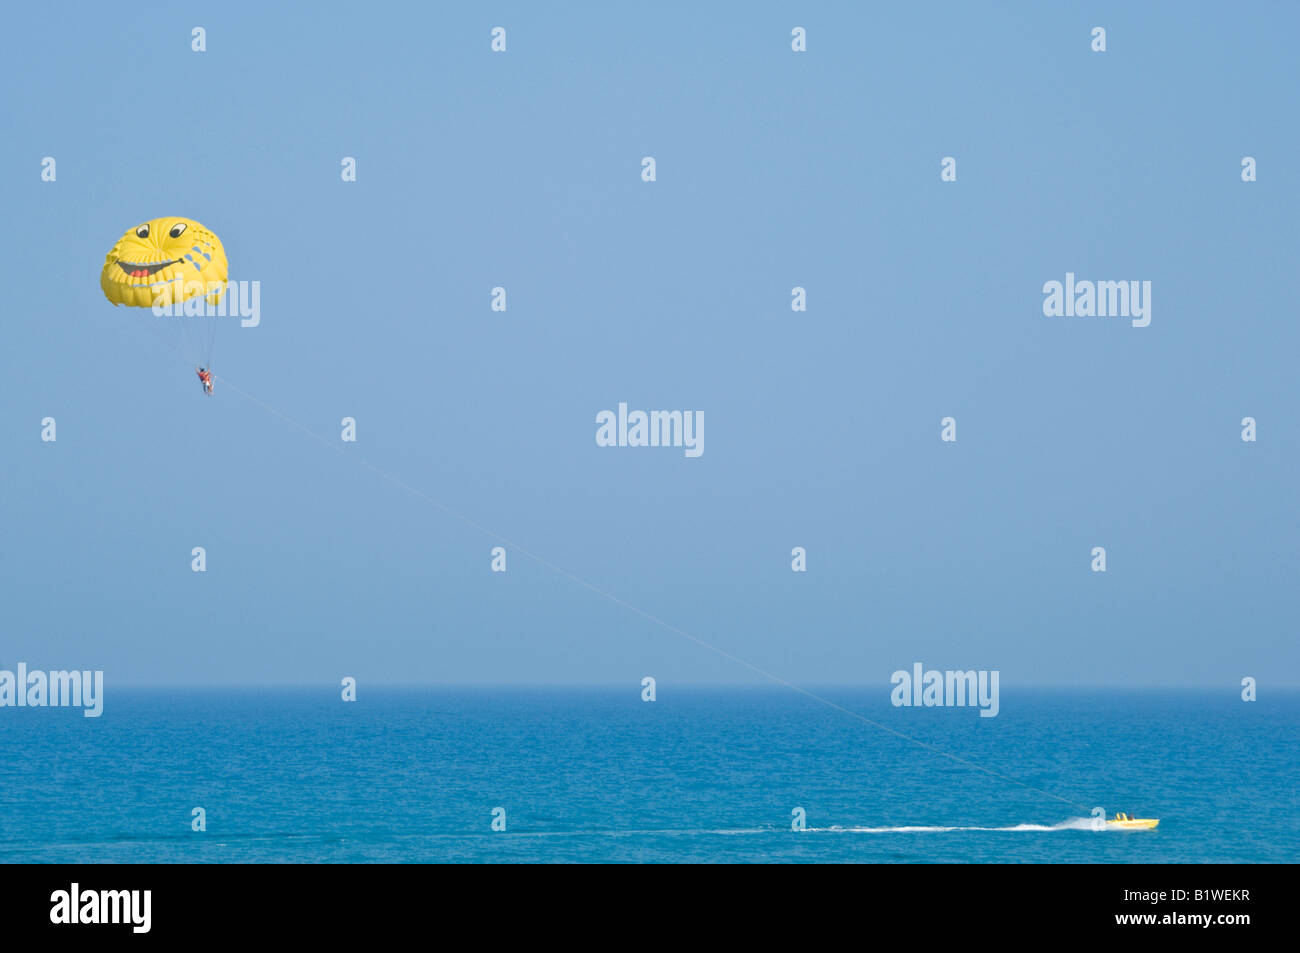 A wide angle view of parasailing near Hammamet in Tunisia on a sunny day against a bright blue sky. - Stock Image